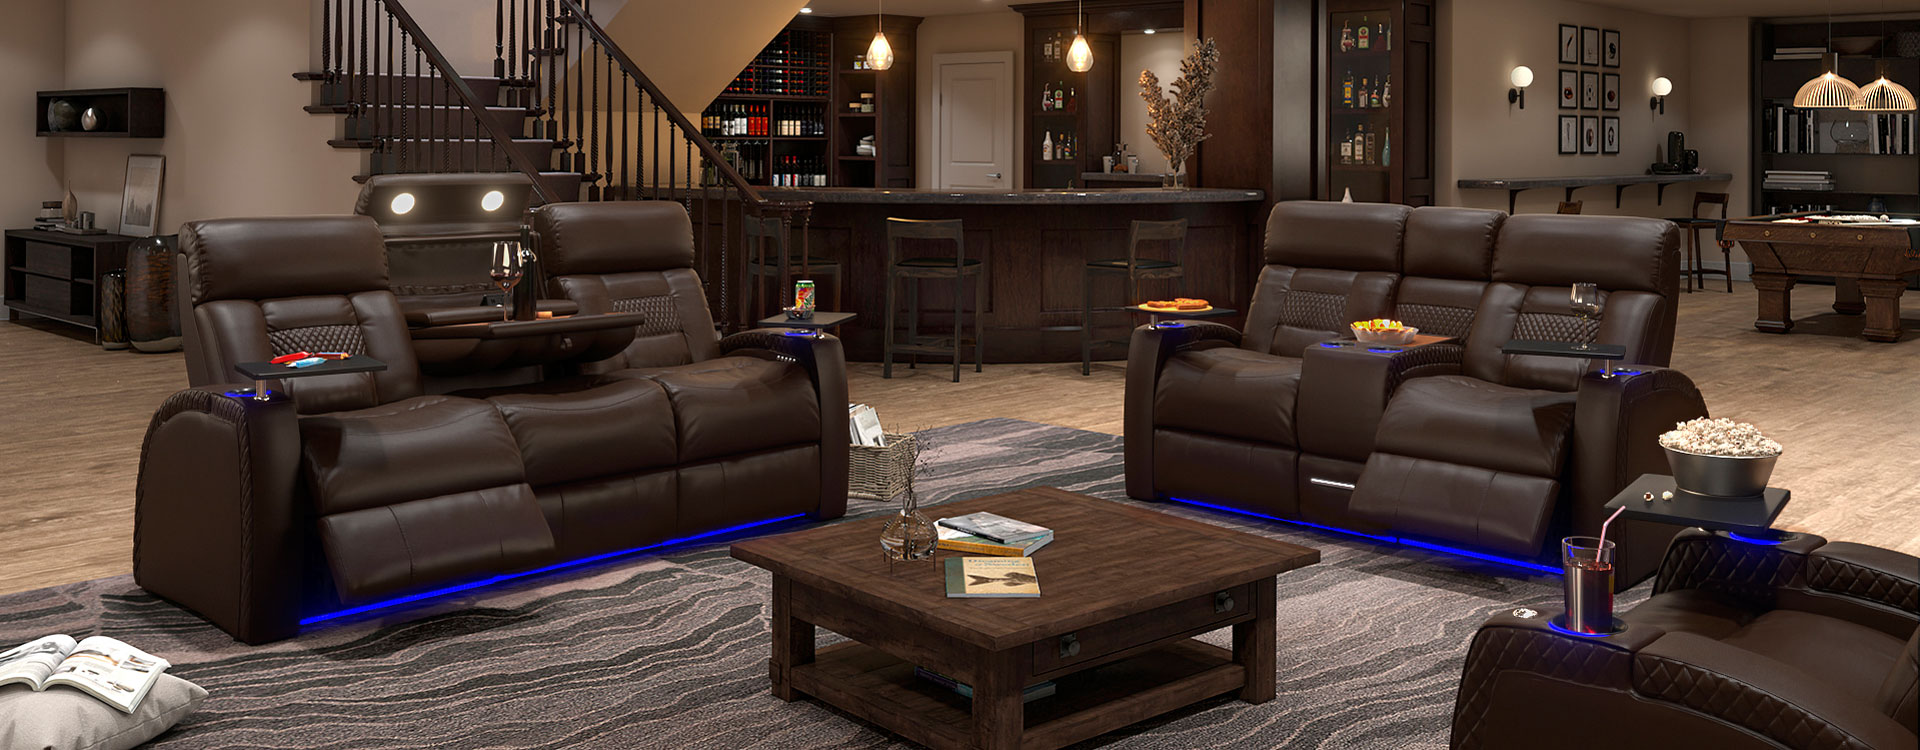 Home Theater Seating Sofa Loveseat Collections